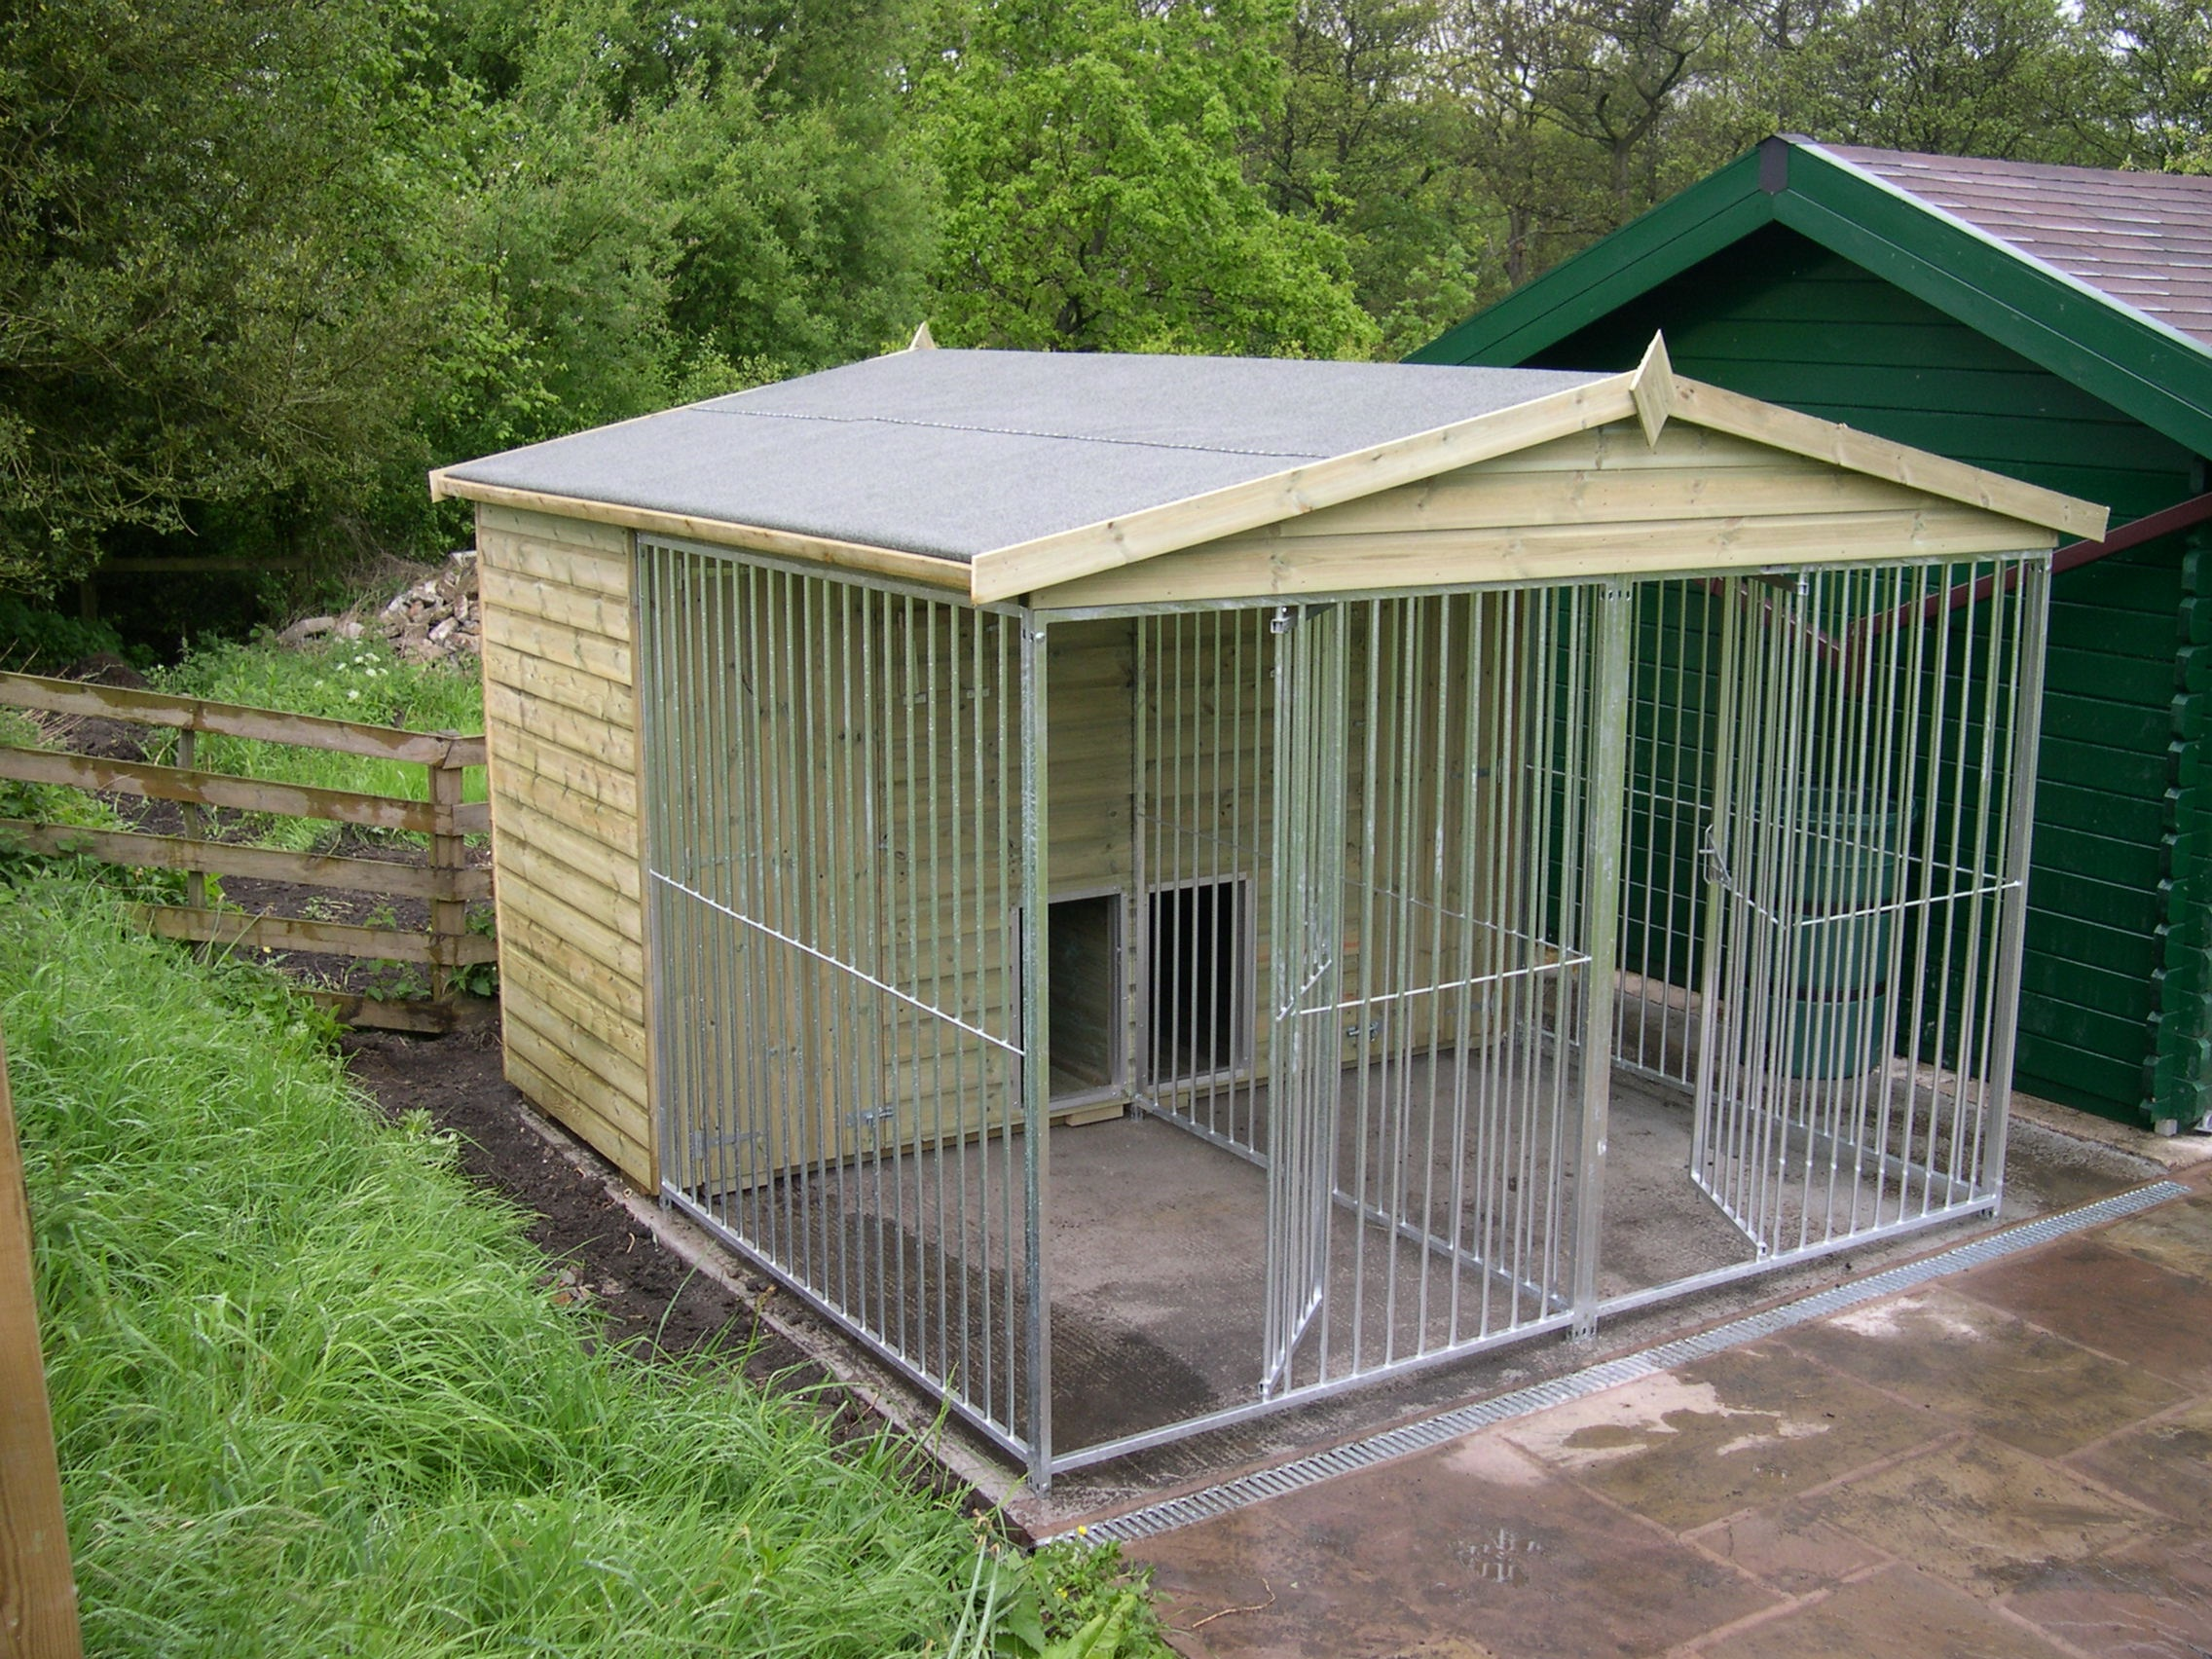 The Chatsworth 10ft Wide x 10.6ft Deep Dog Kennel